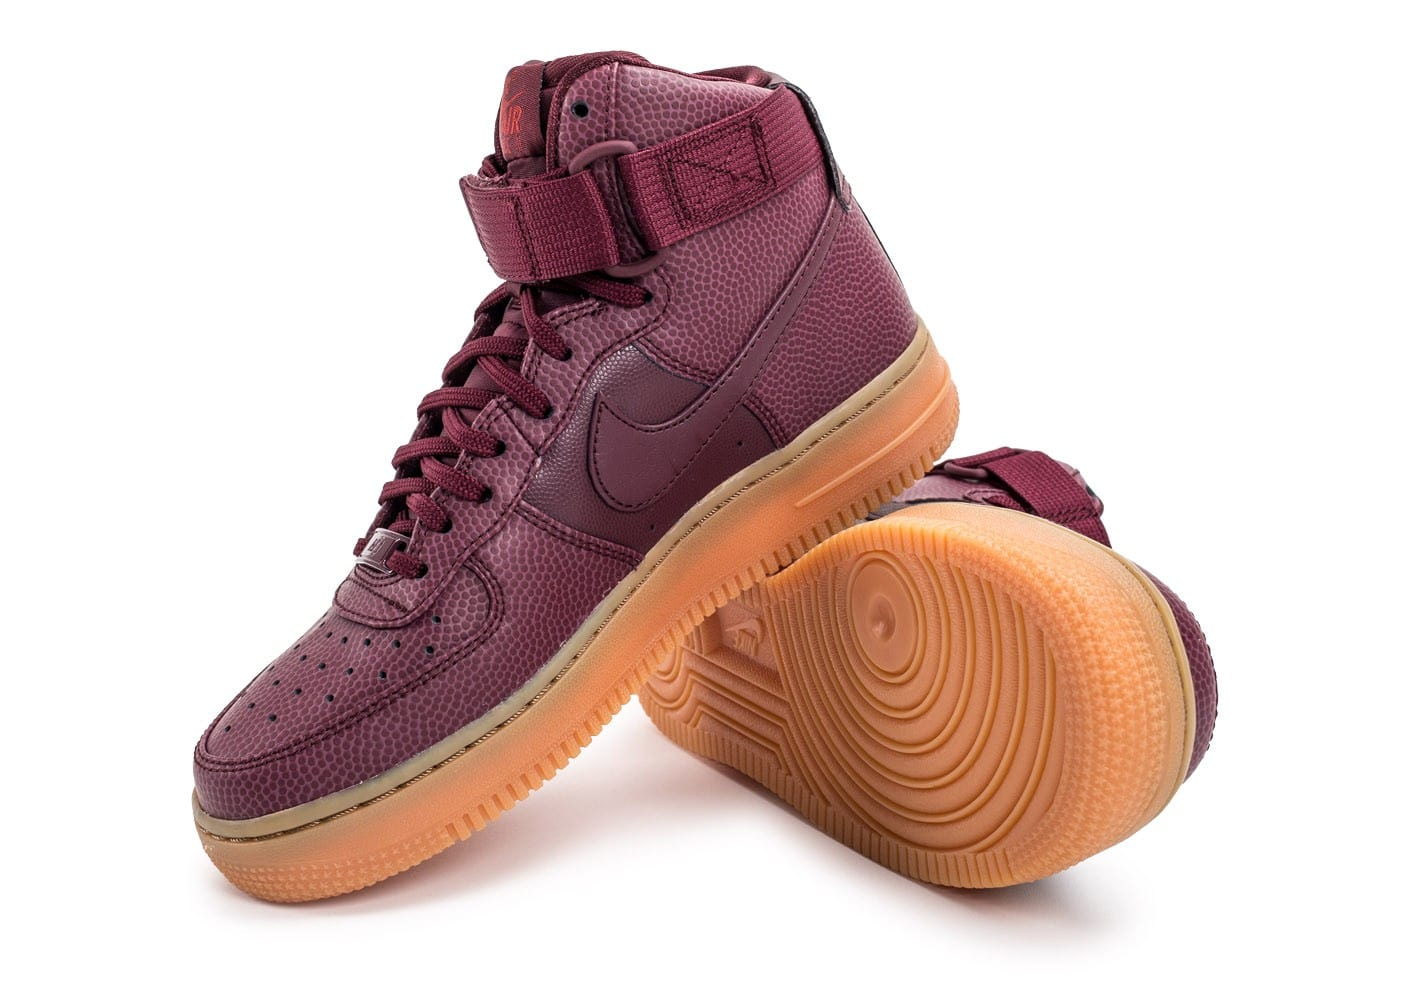 Nike Air Chaussures Femme Force Gum 1 Se Bordeaux Hi Baskets rCxBedWQoE